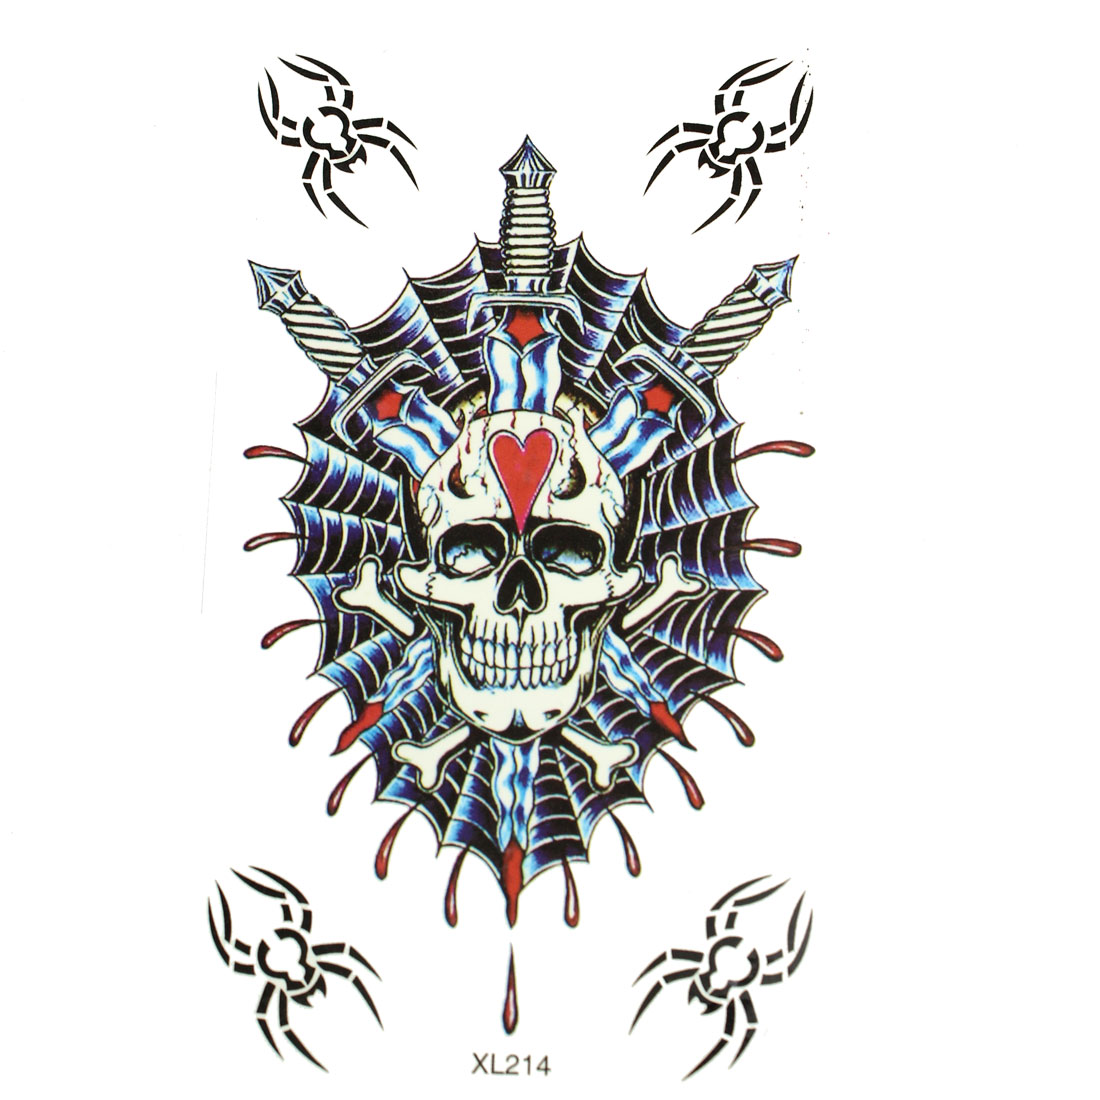 Skull Spiders Print Transfer Tattoos Stickers Temporary Skin Beauty Decals 5 in 1